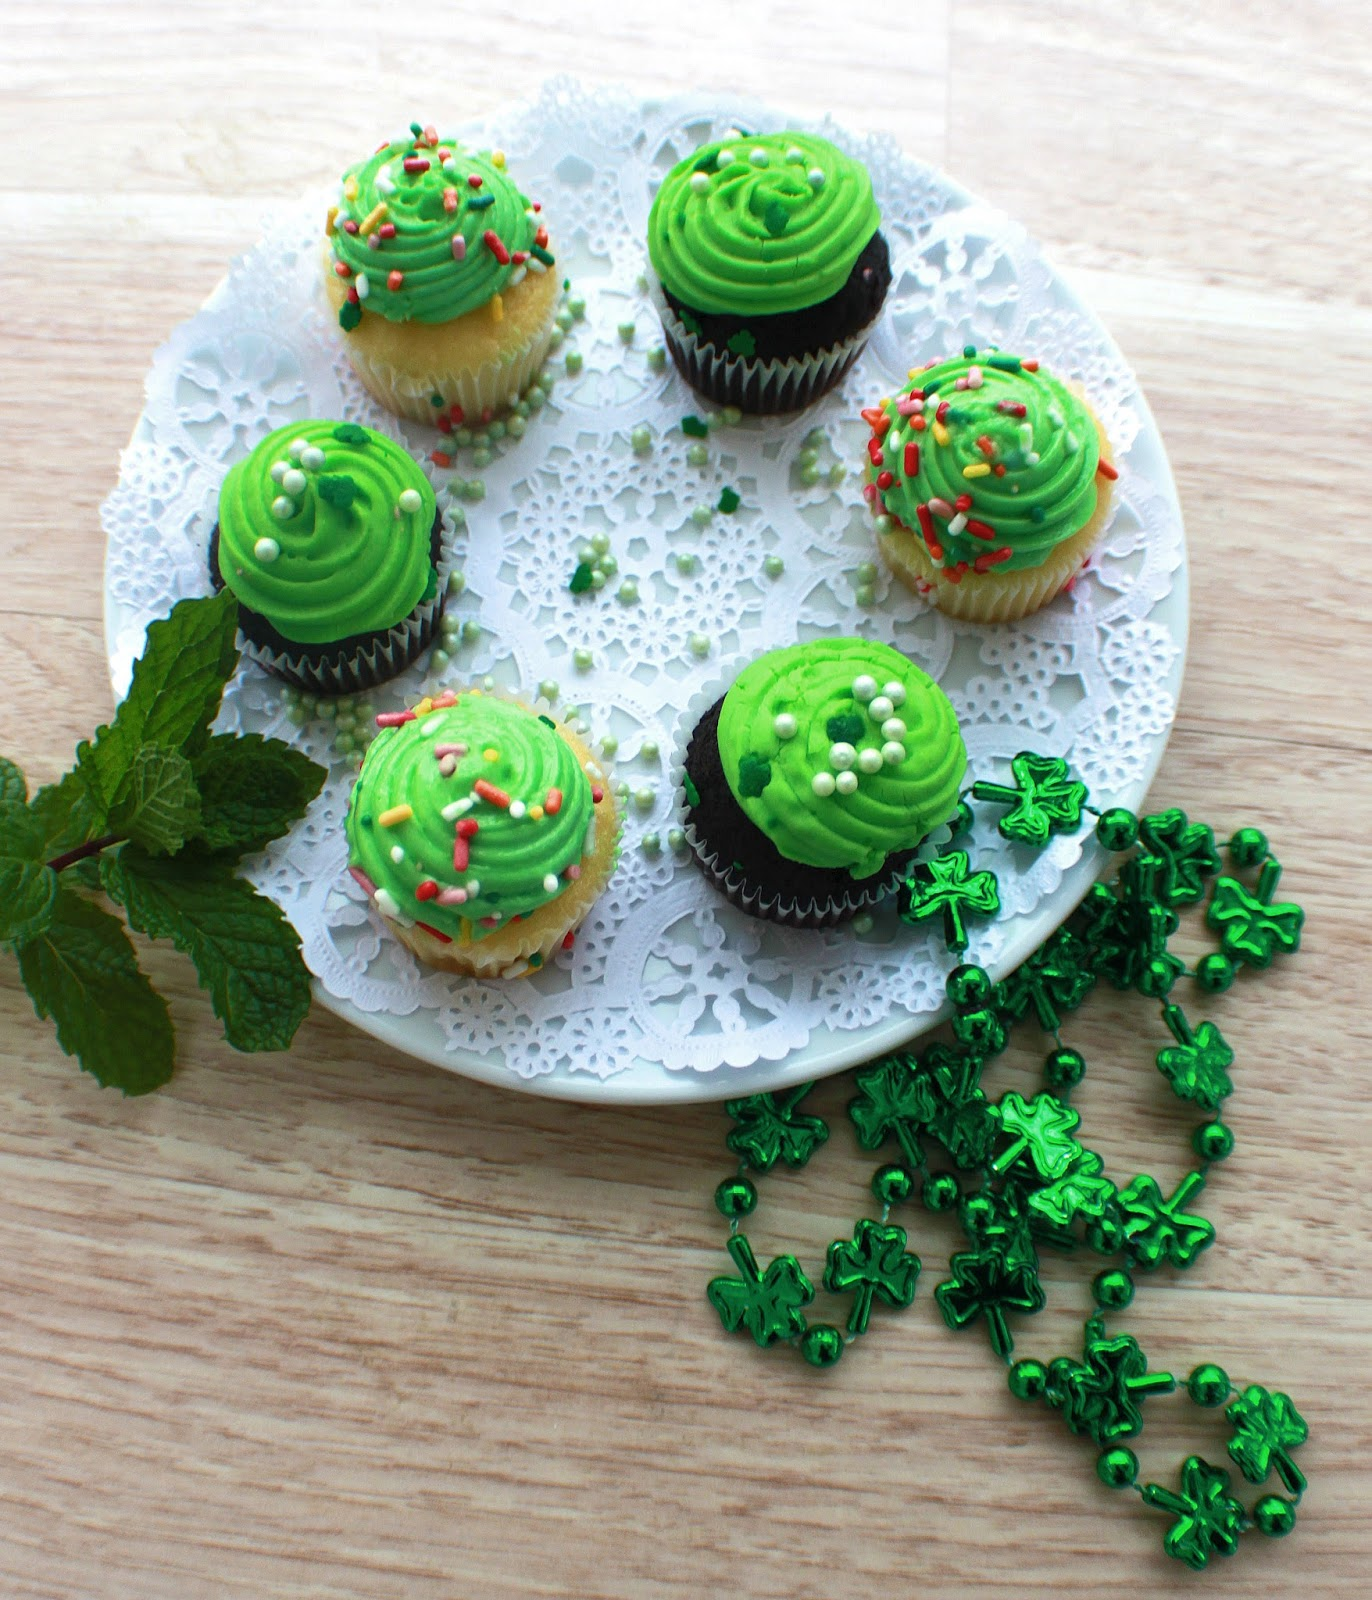 vanilla irish cream cupcakes and chocolate stout beer cupcakes chocolate cupcakes and vanilla  cupcakes made with stout beer for St Patricks Day on a plate